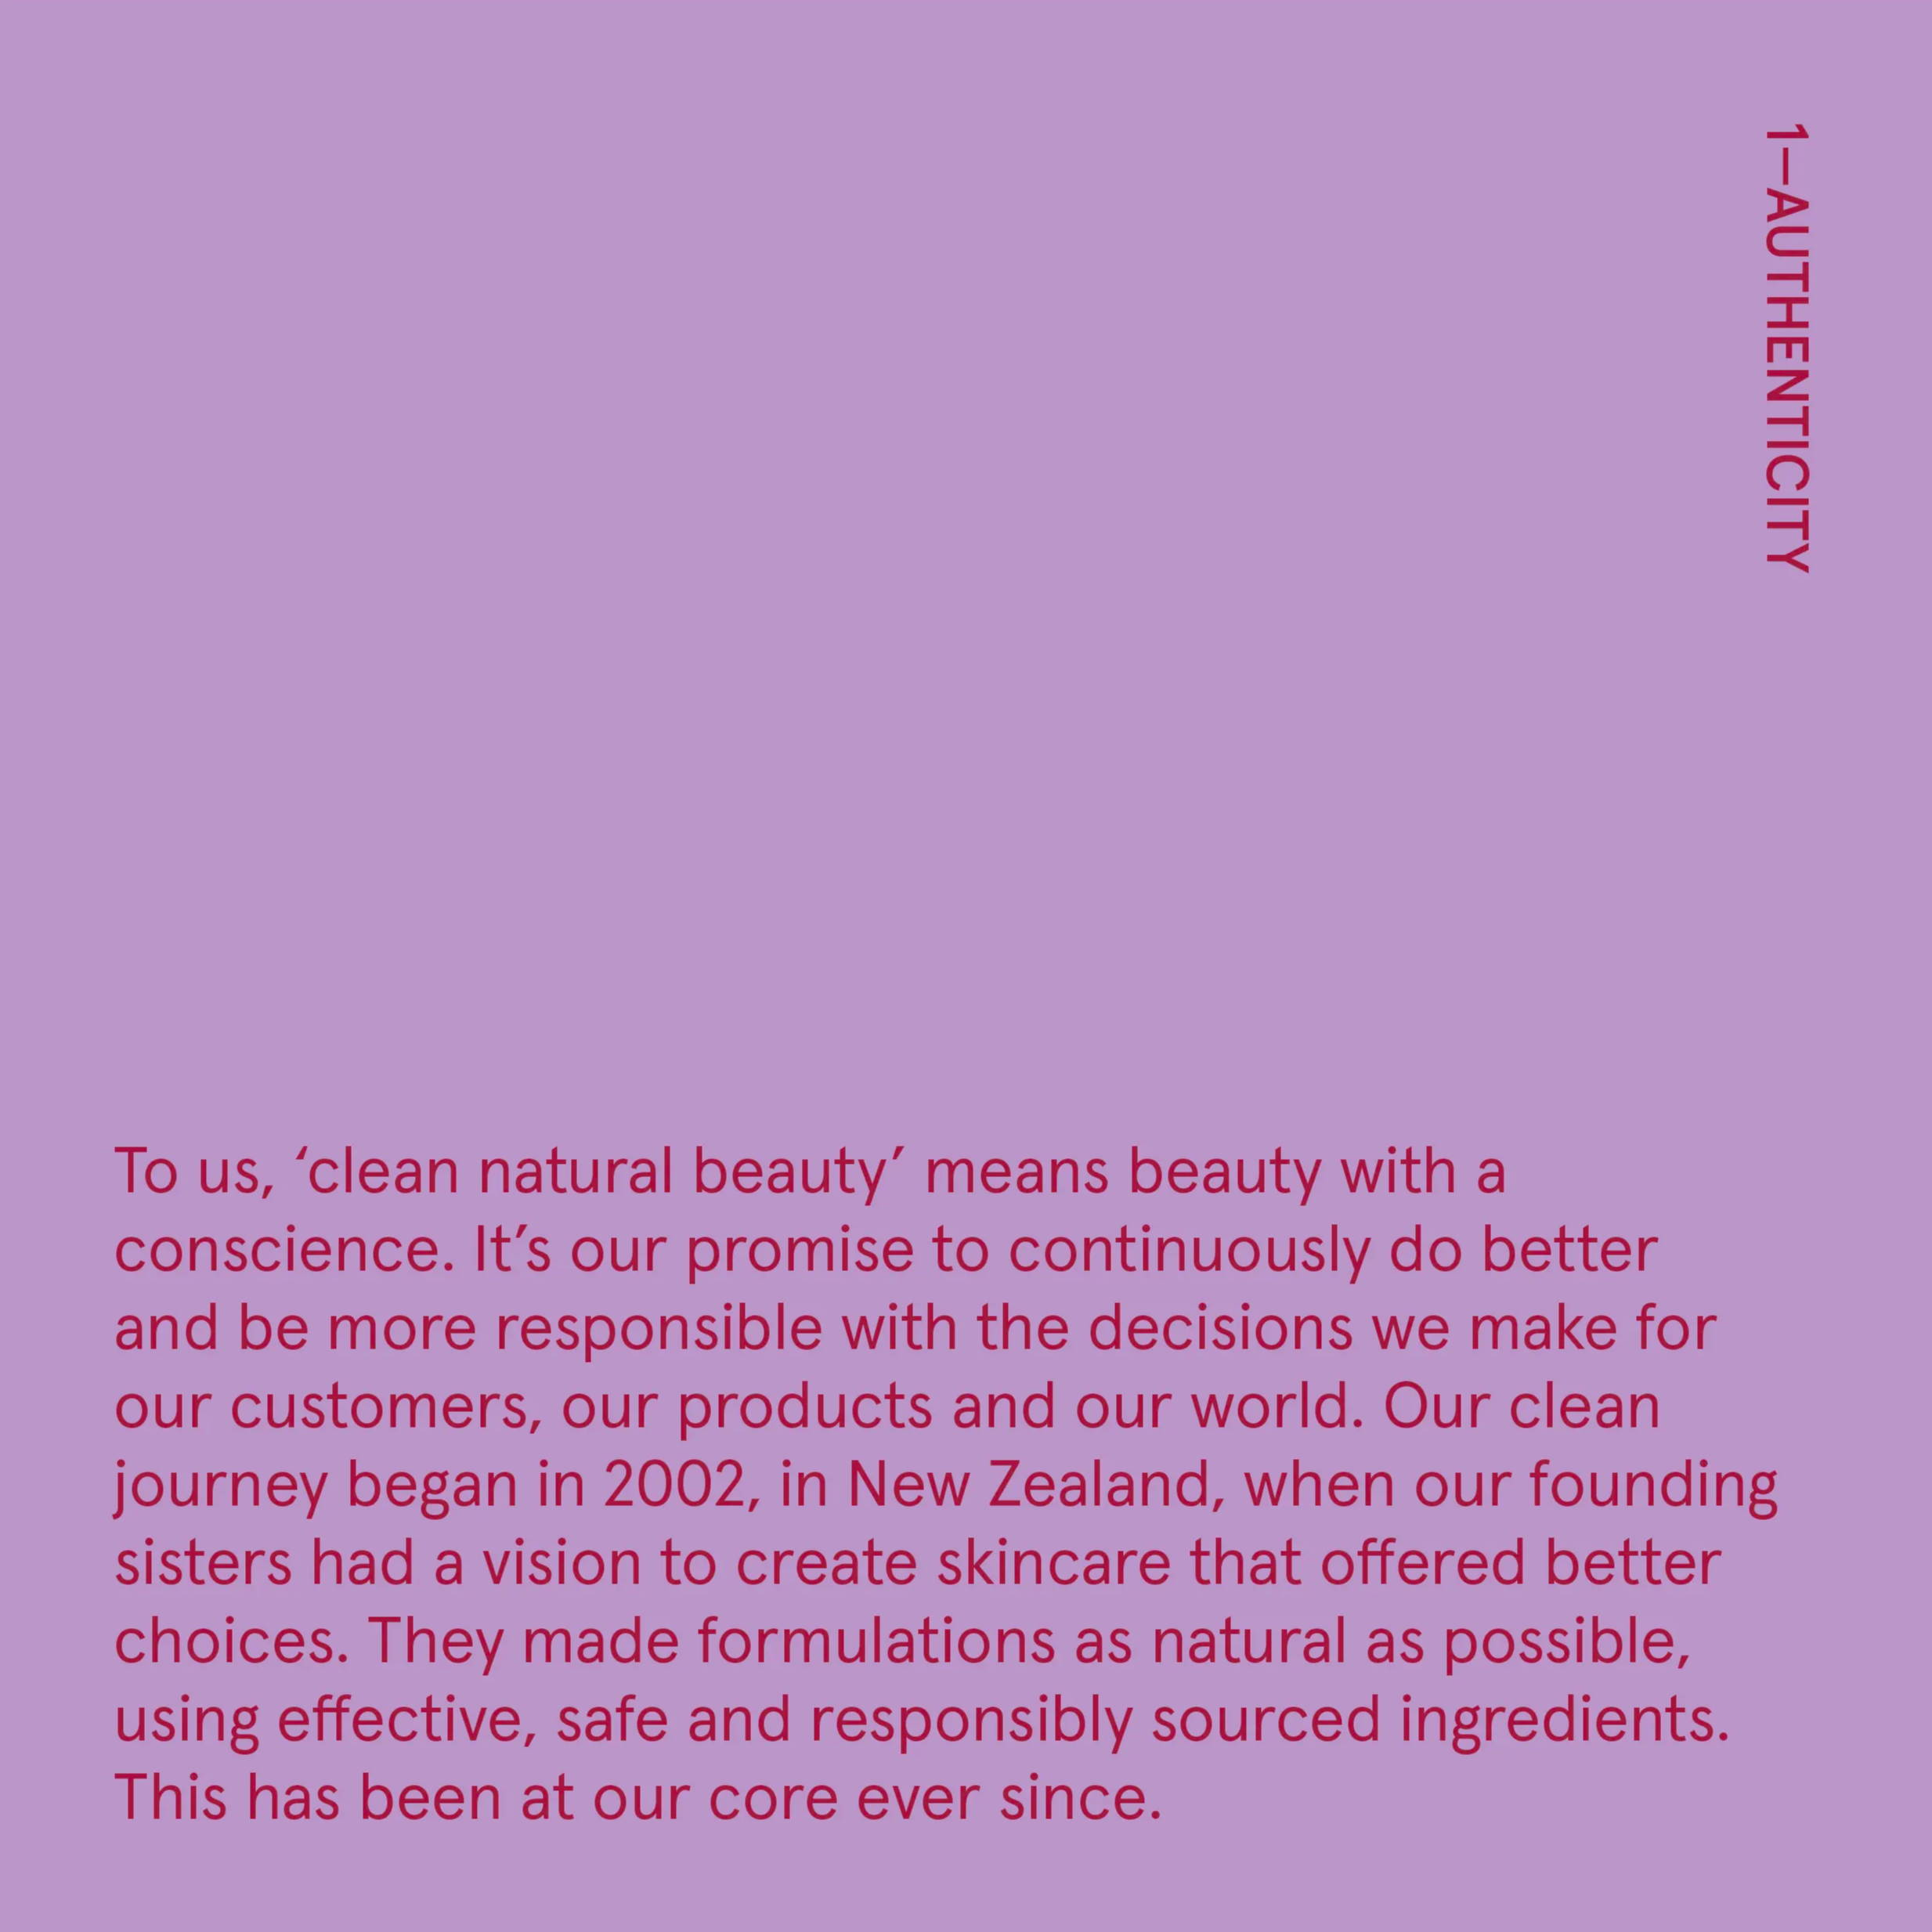 To us, 'clean natural beauty' means beauty with a conscience. It's our promise to continuously do better and be more responsible with the decisions we make for our customers, our products and our world.   Our clean journey began in 2002, in New Zealand, when our founding sisters had a vision to create skincare that offered better choices. They made formulations as natural as possible, using effective, safe and responsibly sourced ingredients. This has been at our core ever since.   Honesty and authenticity are particularly important in the beauty industry. Often seen as an industry of smoke and mirrors there isn't much regulation around the terms 'clean' and 'natural'. That's why we choose to back our claims with strict third-party certifications. After all, trust is important, and we want you to know we're the real deal.